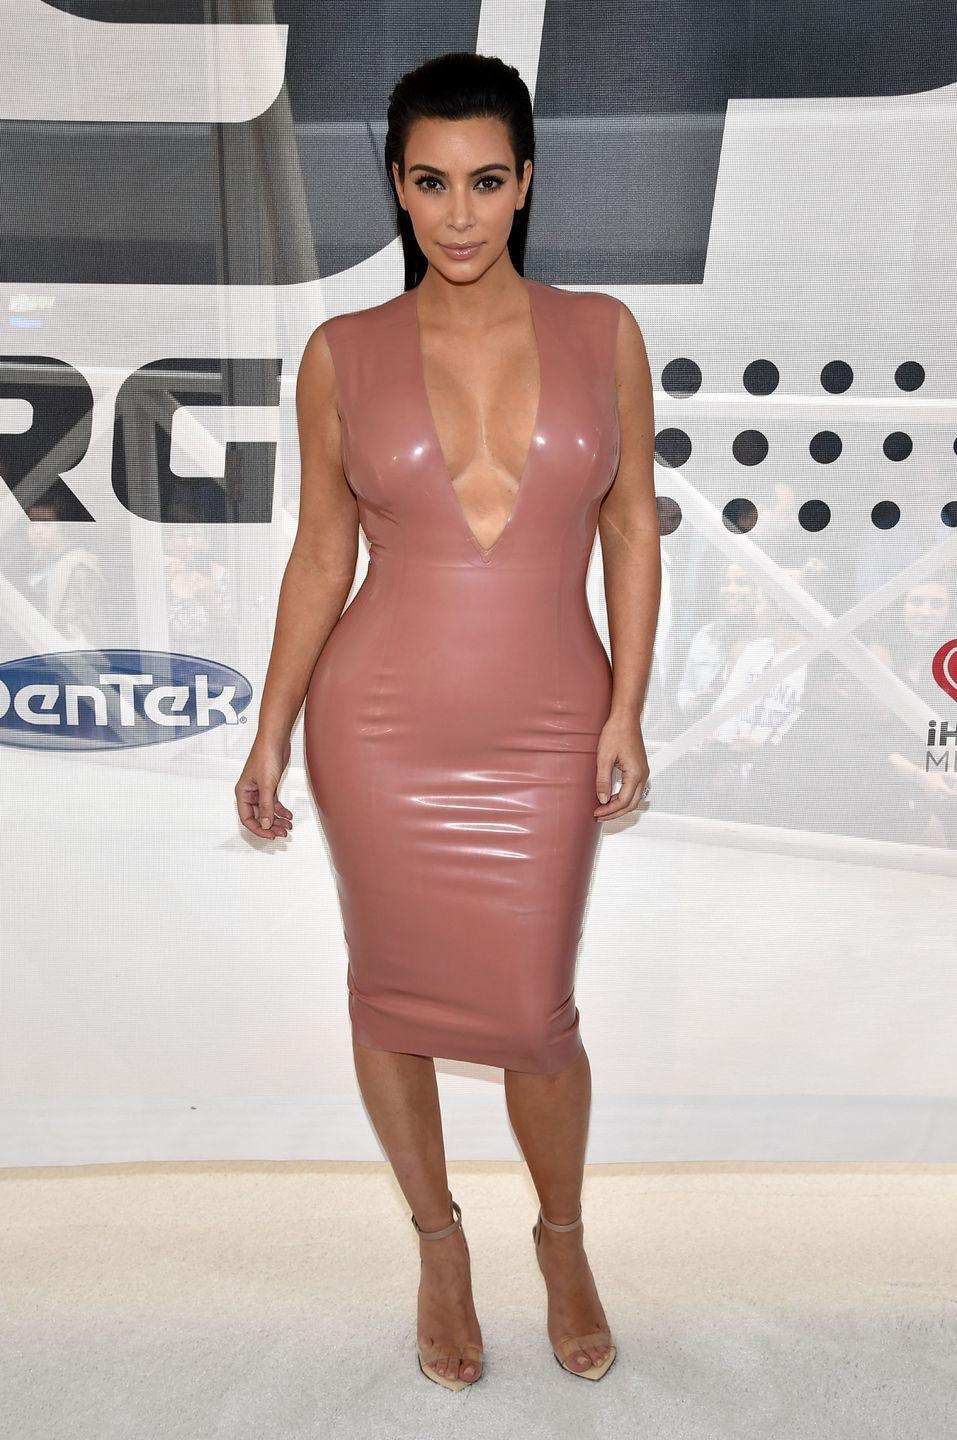 <p>Kim may make it look totally casual, but these bondage-inspired dresses are a bitch to get on. </p>